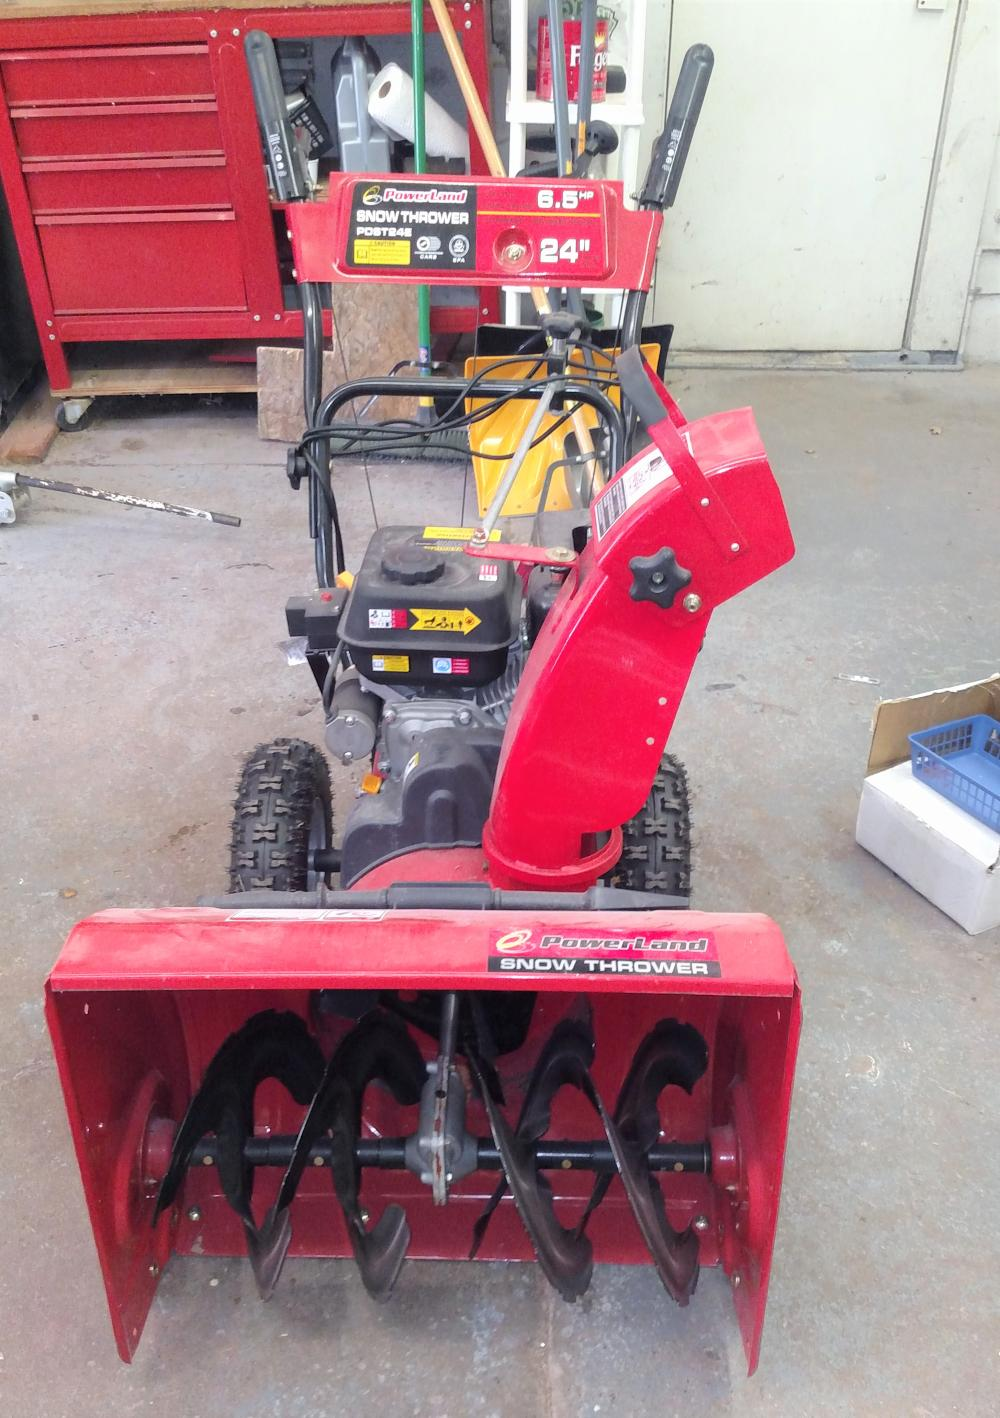 "powerland snow thrower 6.5hp, 24"", PDST24E"